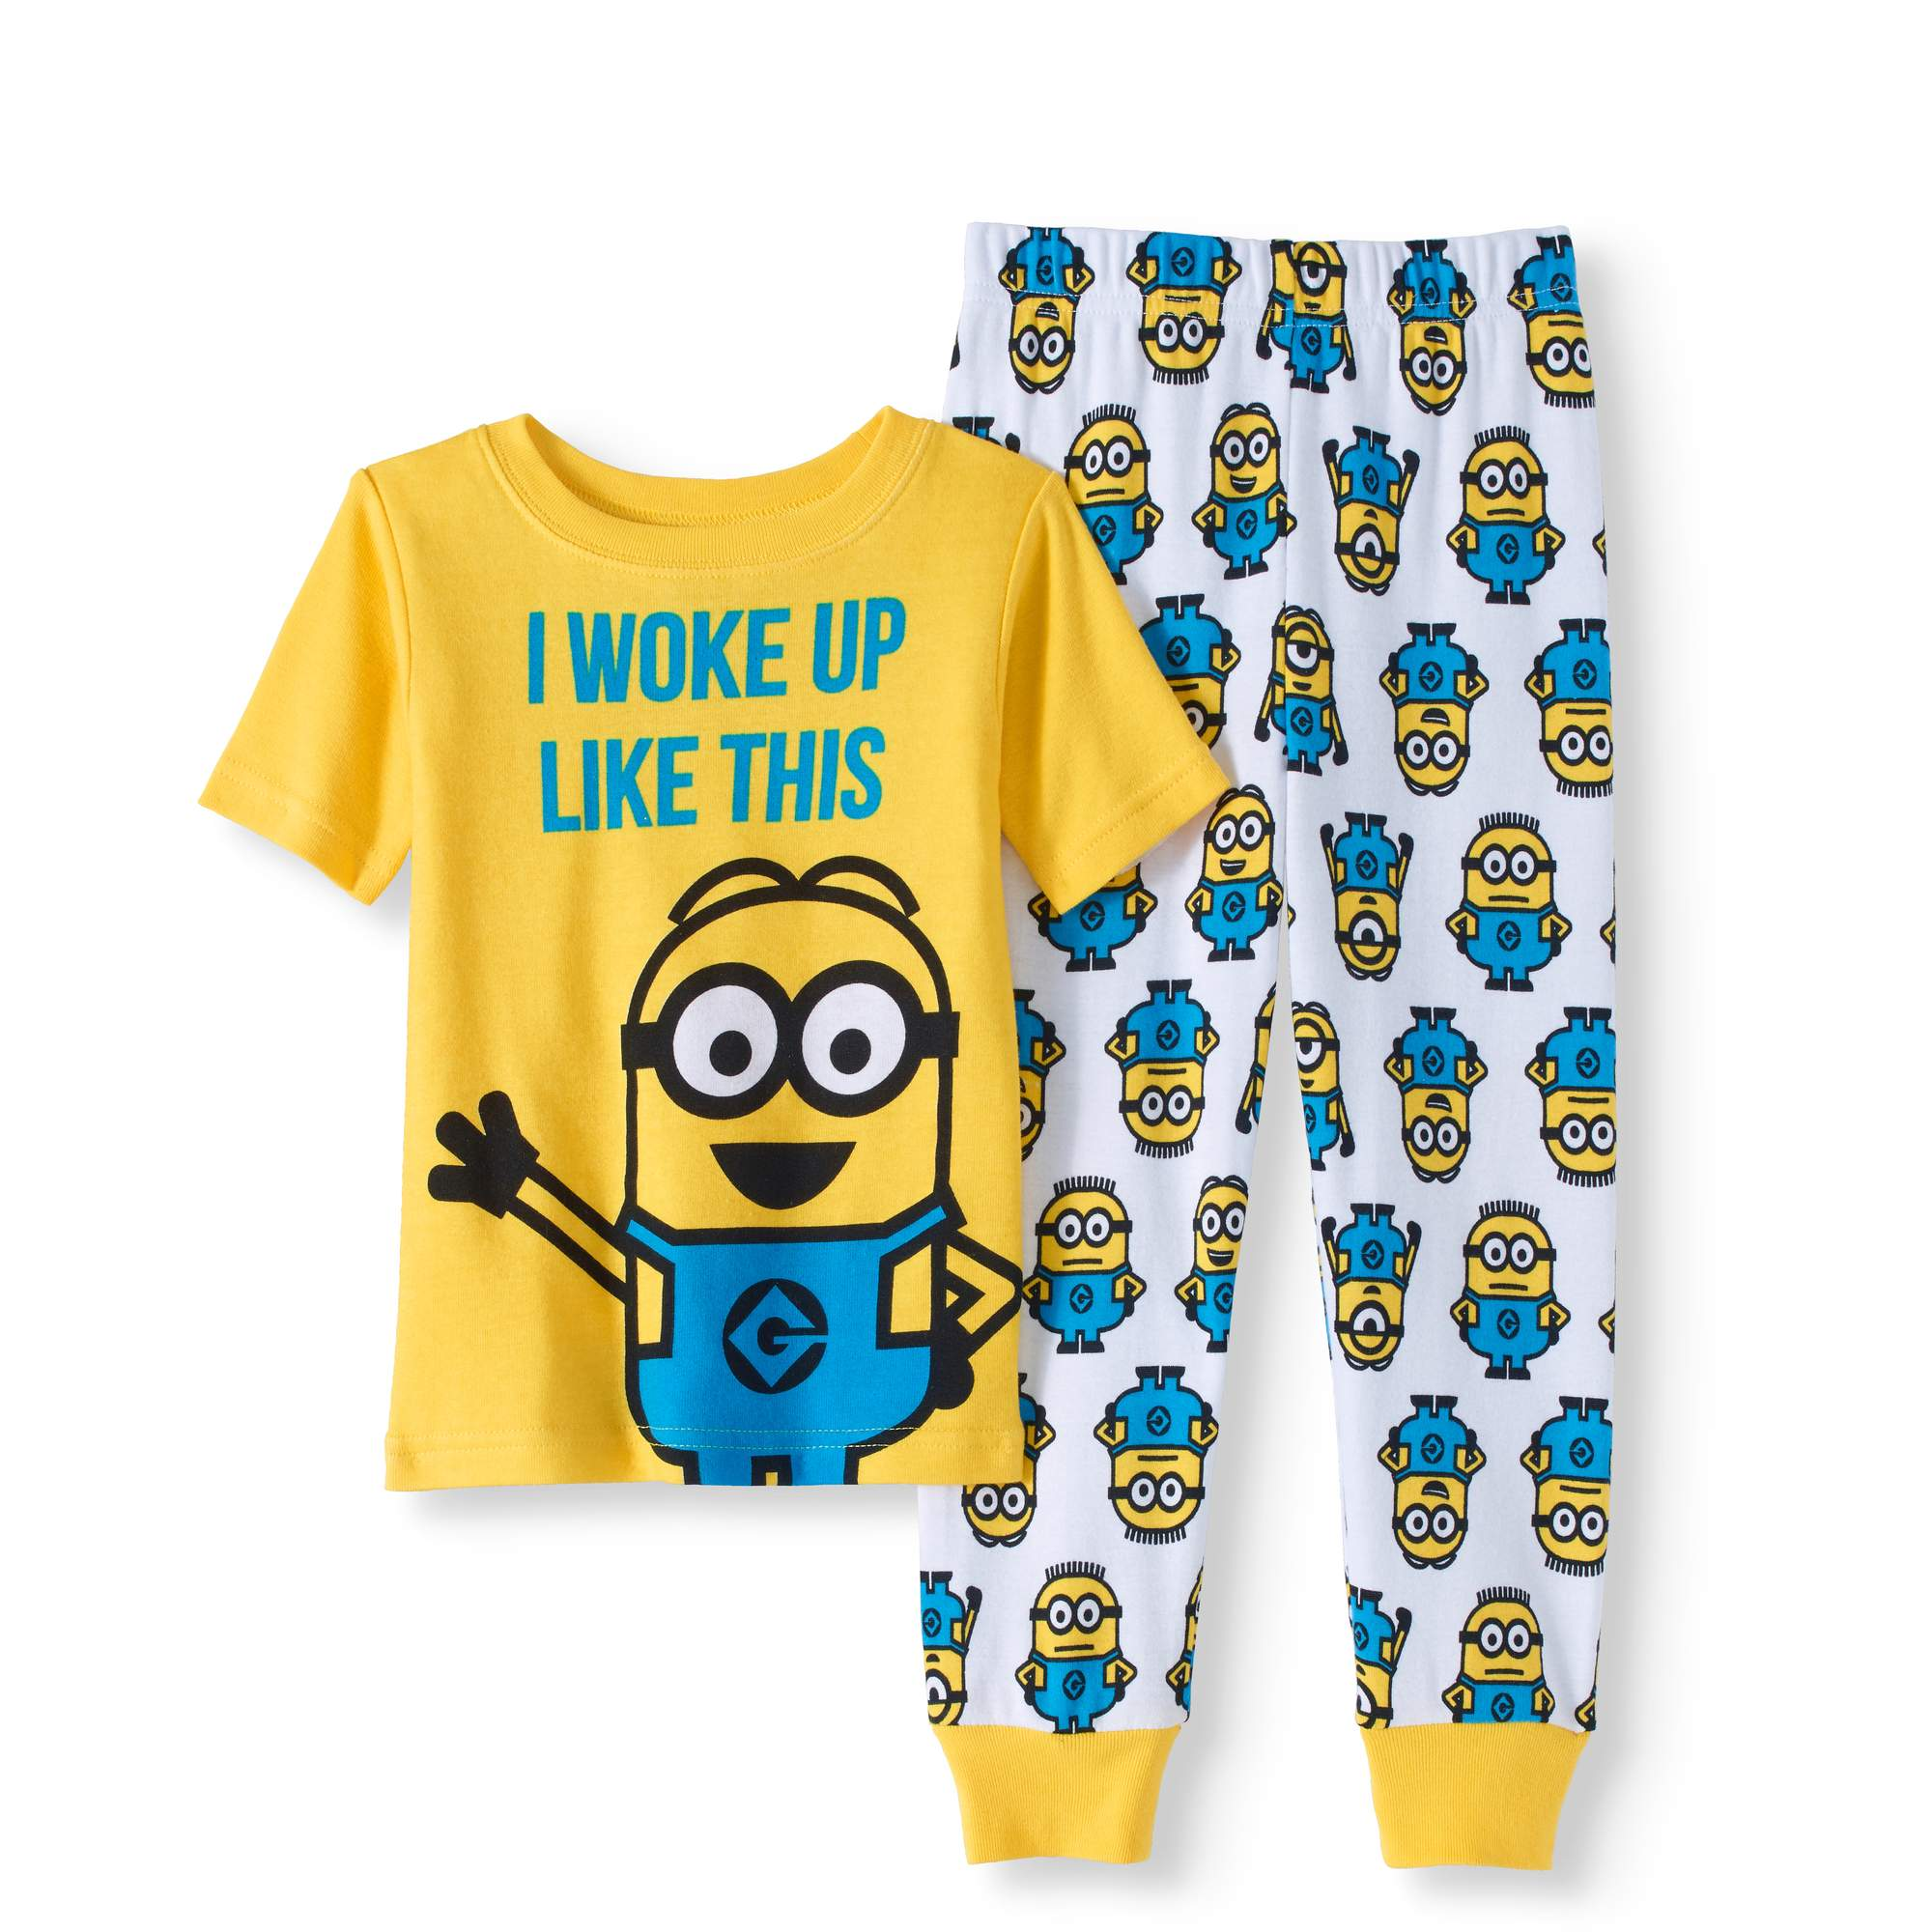 Minions Toddler Boy Cotton Tight Fit Pajamas, 2pc Set